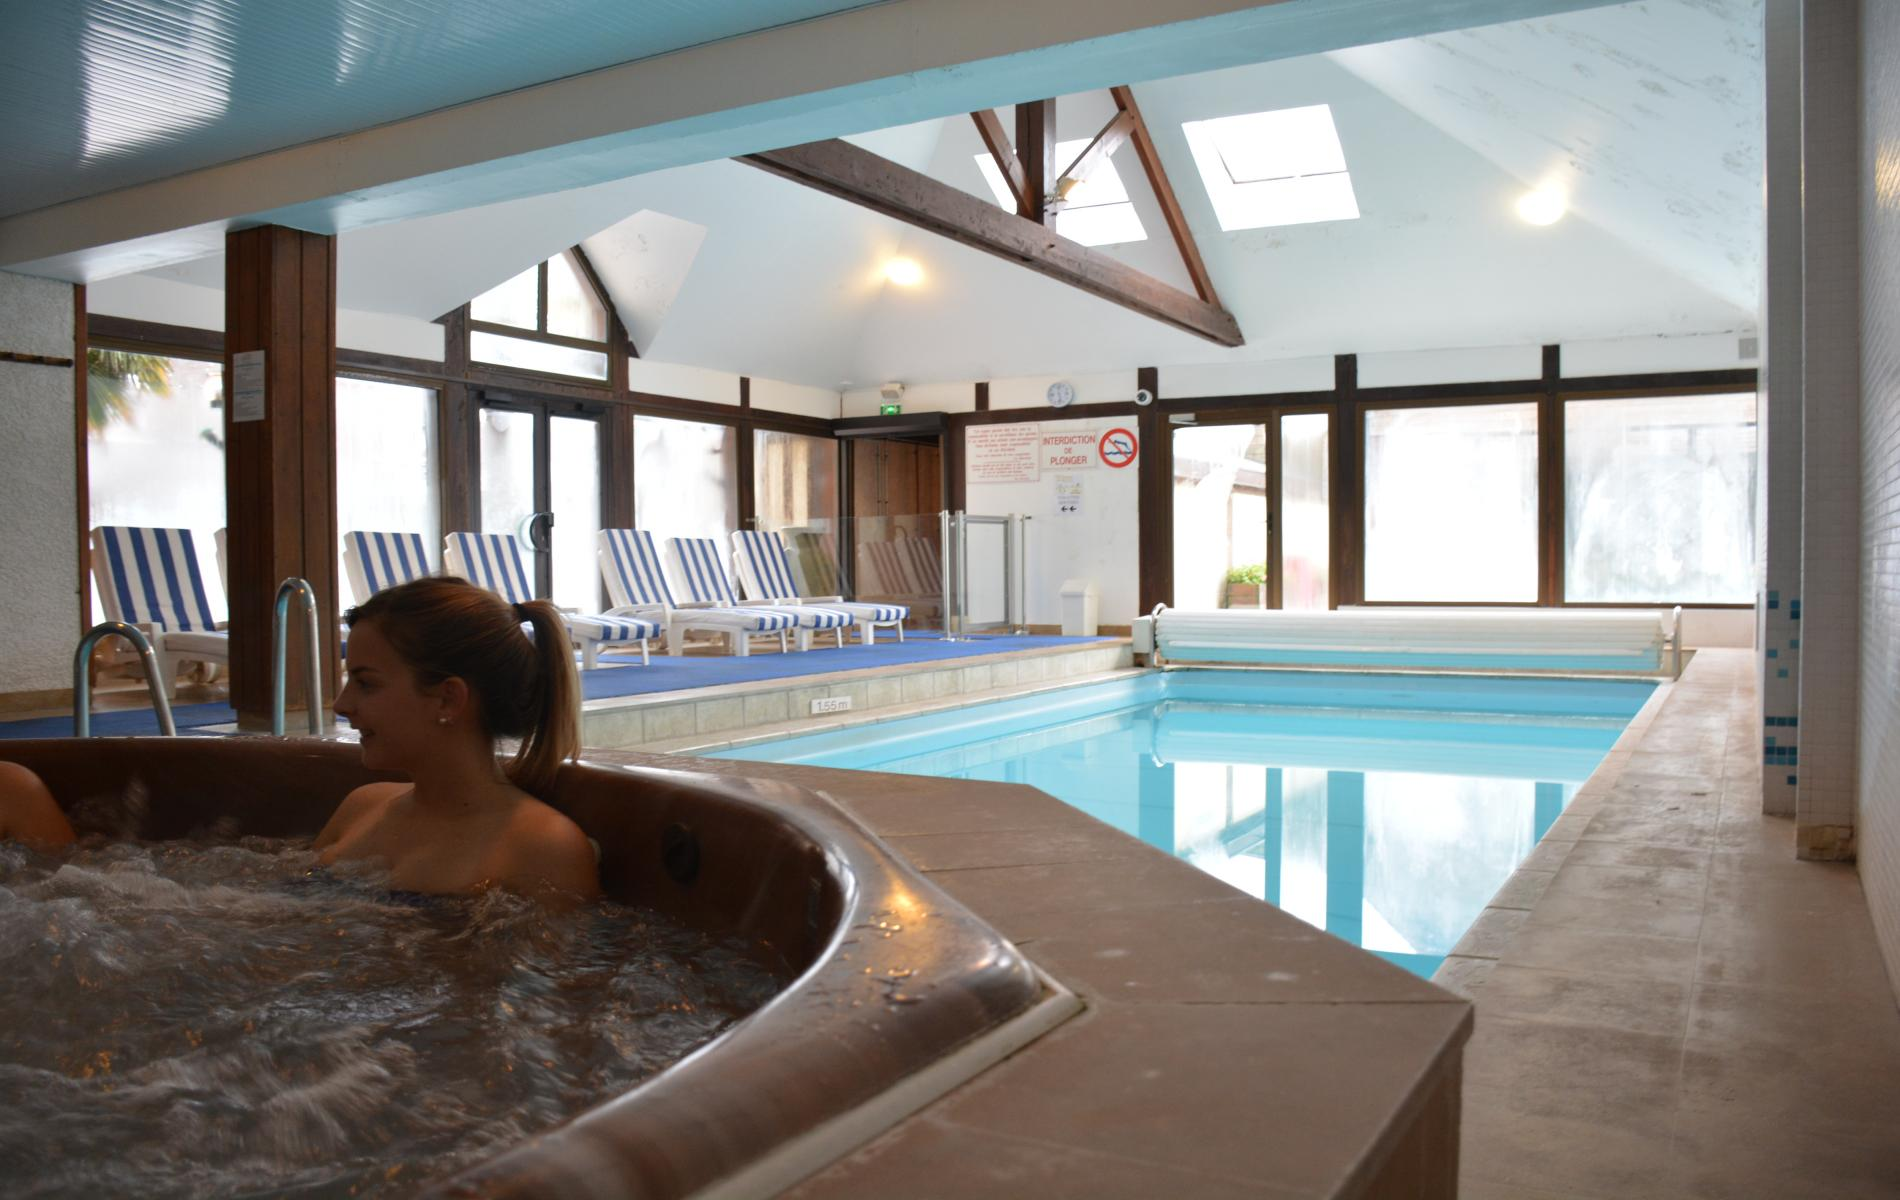 Deauville hotel with swimming pool 3 star Hotel Deauville Hotel Restaurant Deauville # Hotel Saint Gatien Des Bois